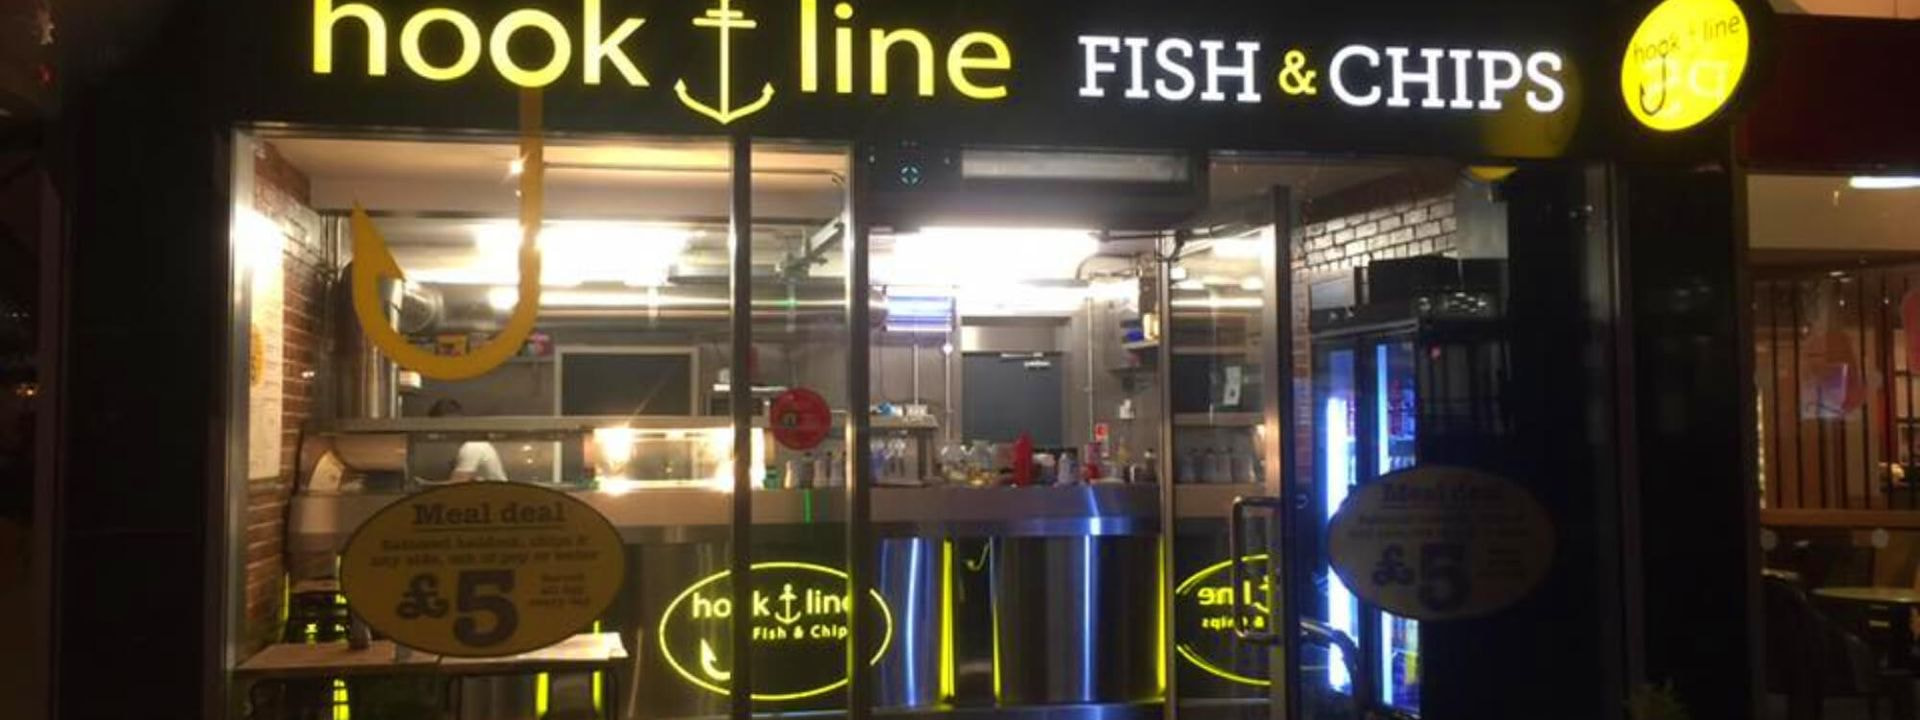 Hook and Line Fish and Chips